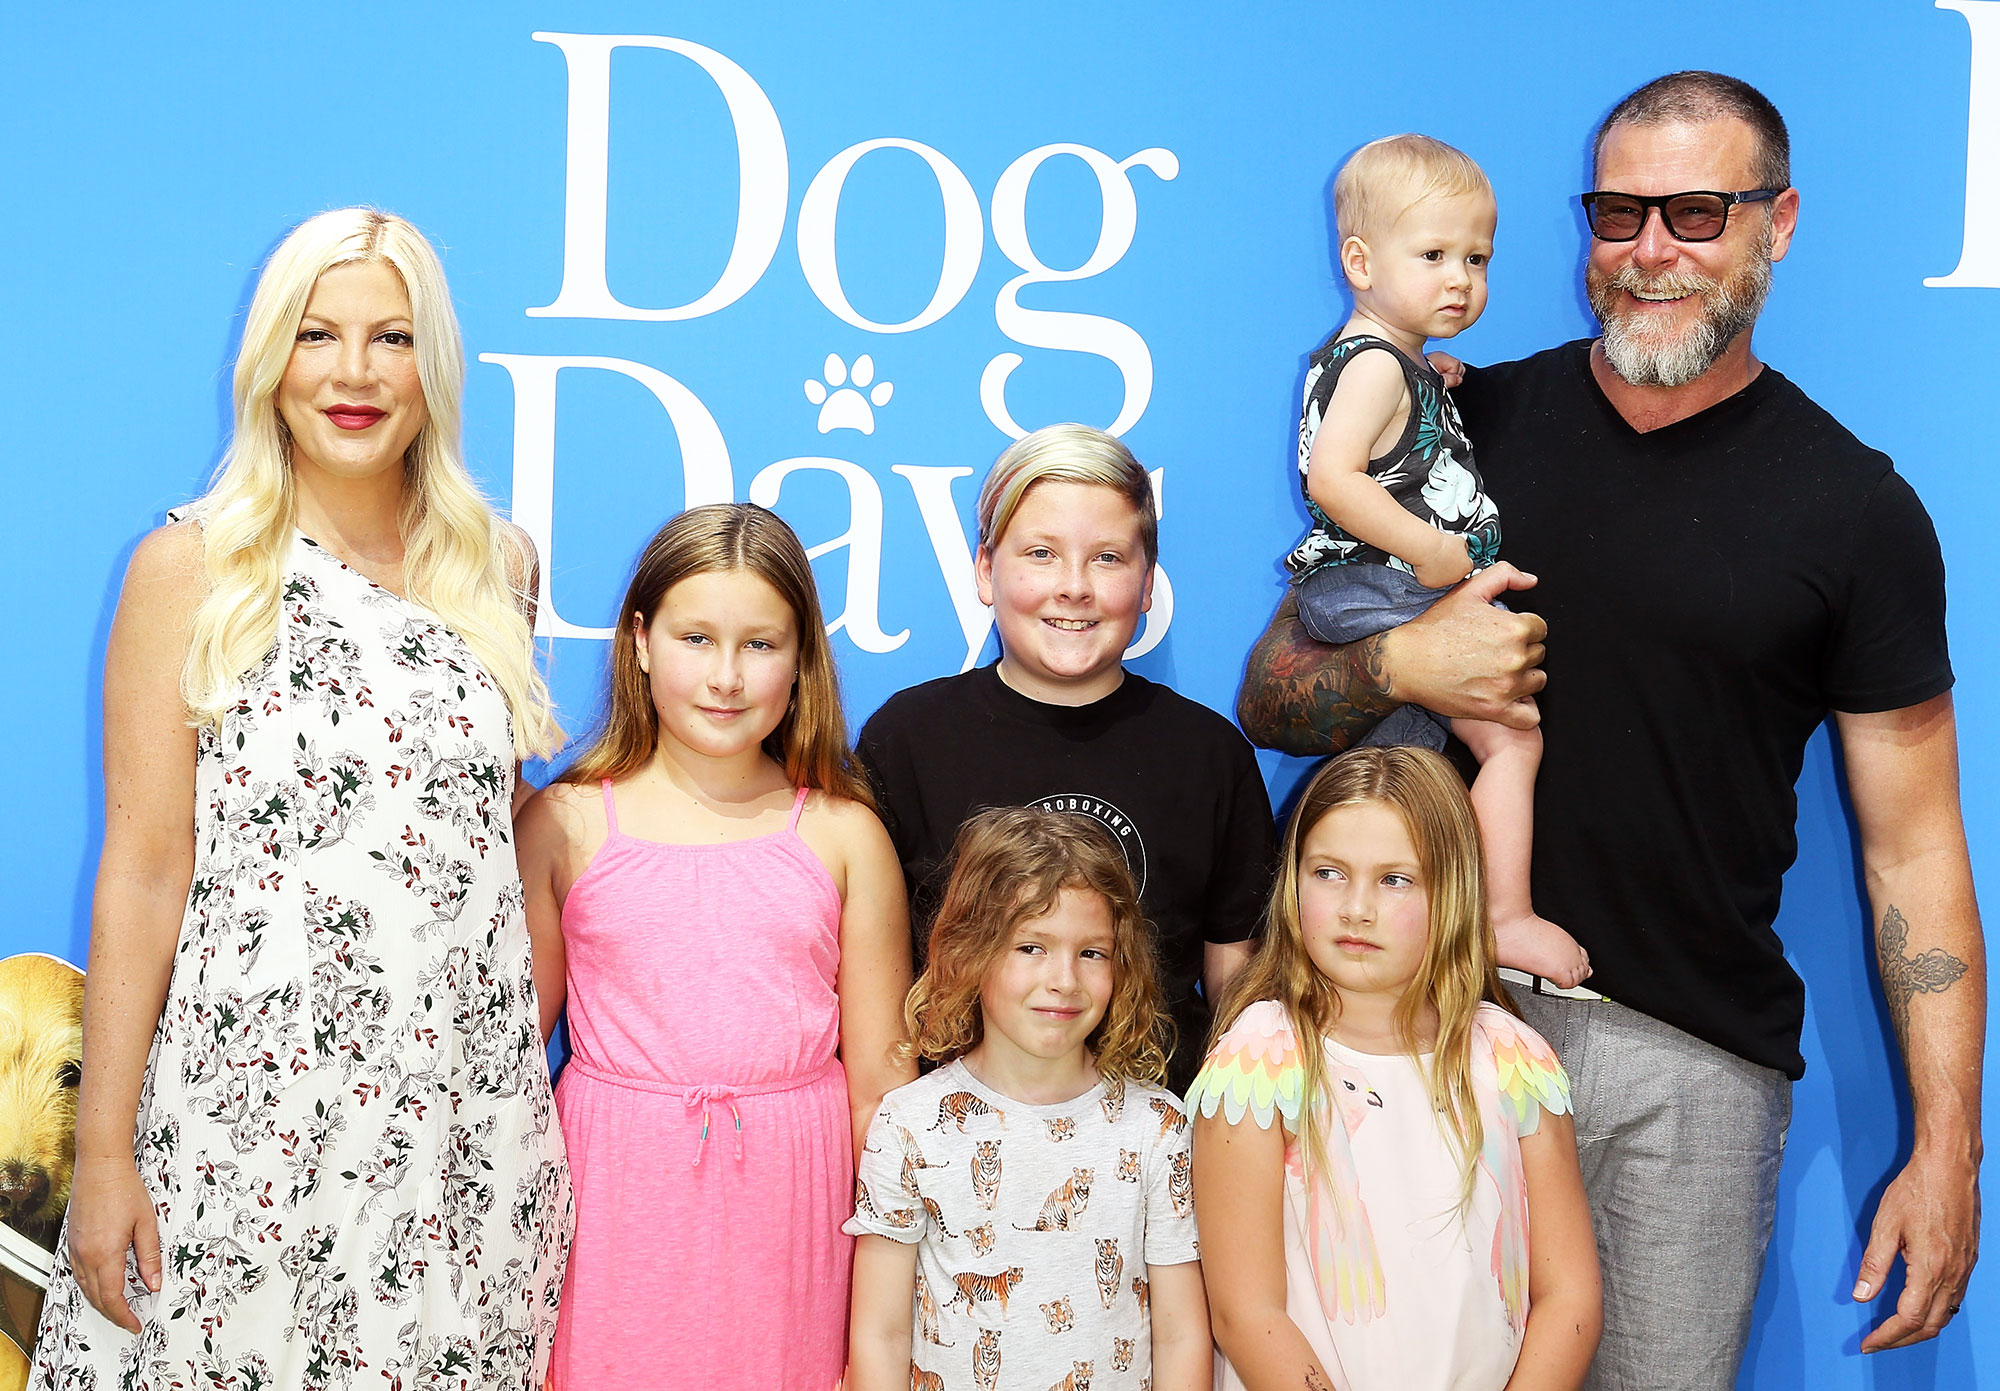 "How Tori Spelling, Dean McDermott Keep Their Romance Alive: I Have to Touch Her Butt Every Day. - Tori Spelling with Dean McDermott and their children attend the Los Angeles premiere of LD Entertainment's ""Dog Days"" held at Westfield Century City on August 5, 2018 in Century City, California."